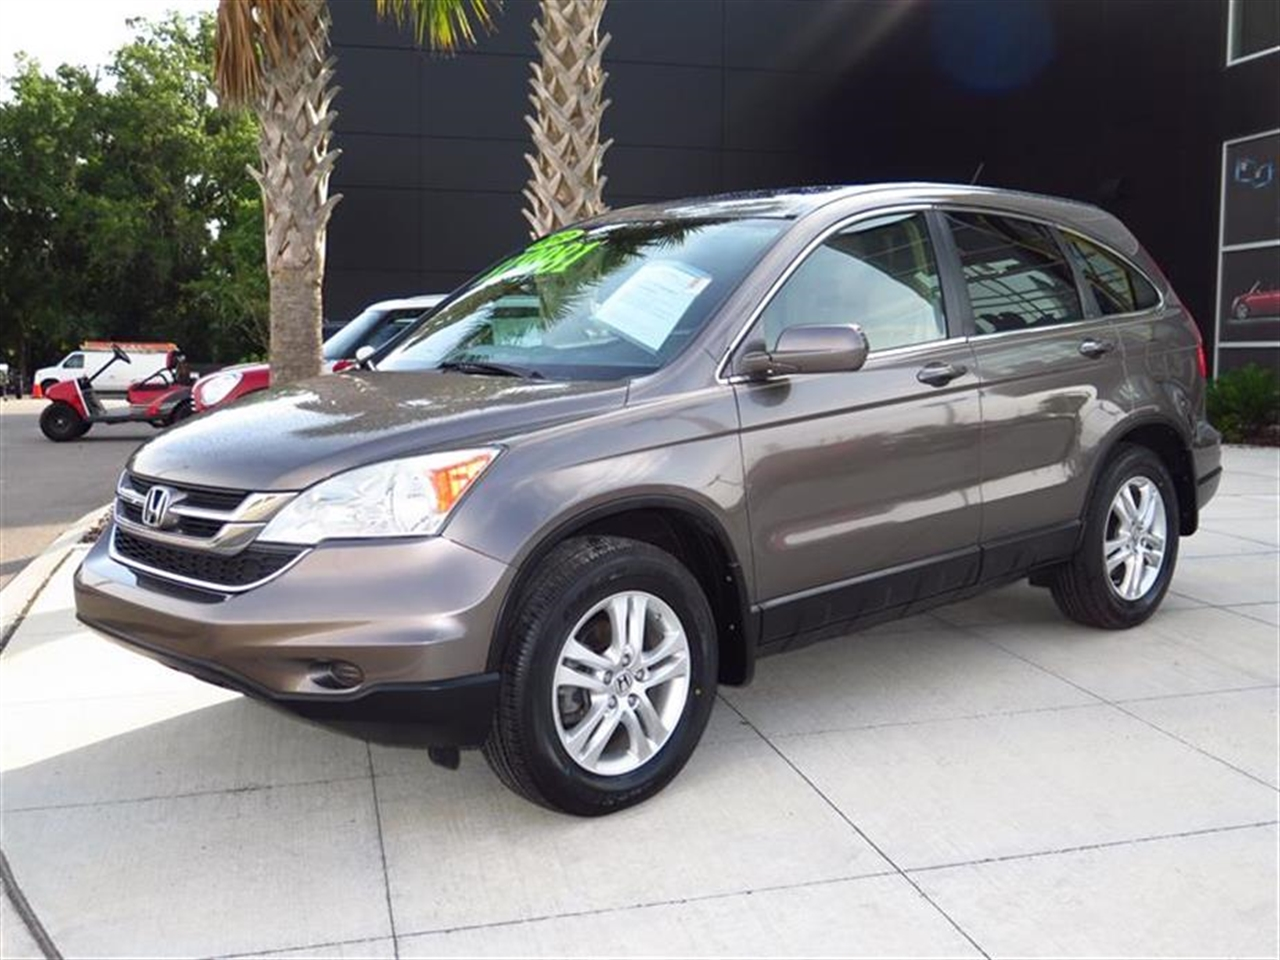 2010 HONDA CR-V 2WD 5dr EX-L 47634 miles 4 cargo area tie-down anchors 8 front  rear cup hol